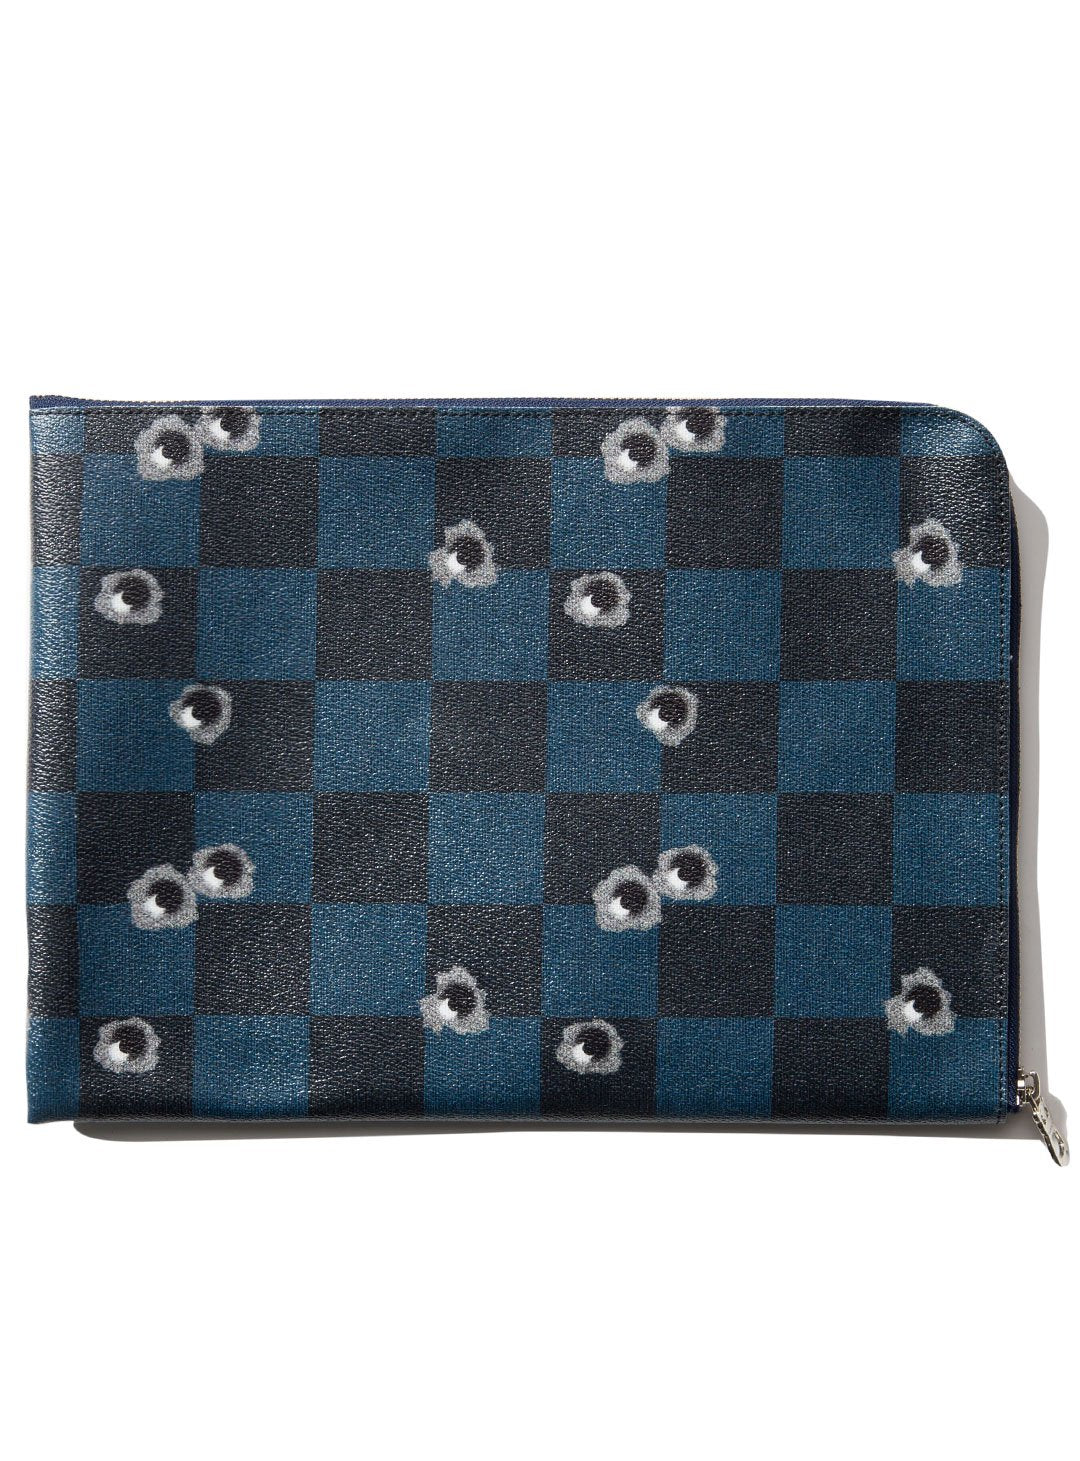 BABYLON L.A. LAPTOP CASE